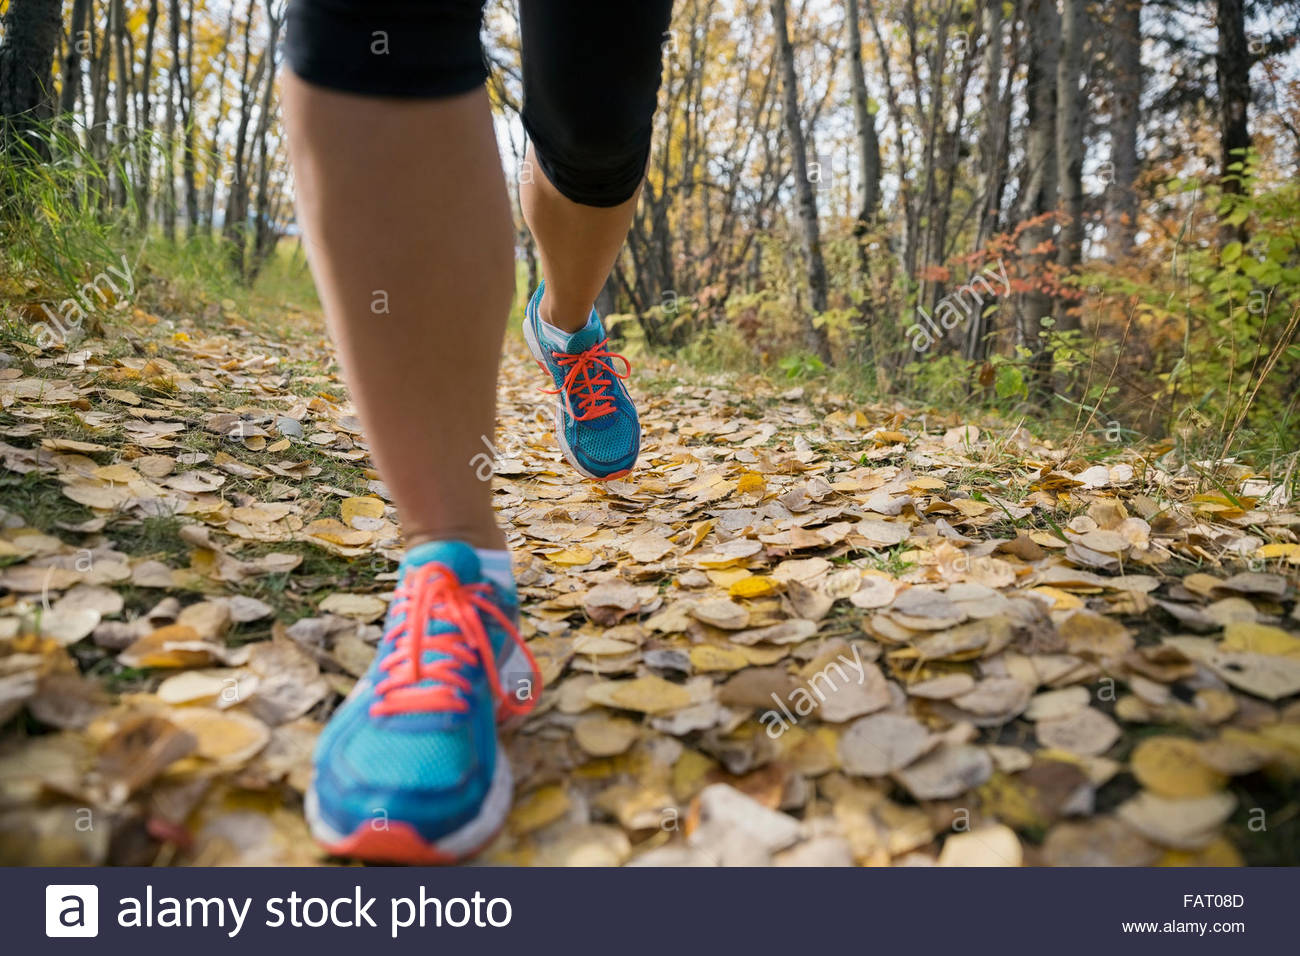 Close up woman's feet jogging on autumn path - Stock Image